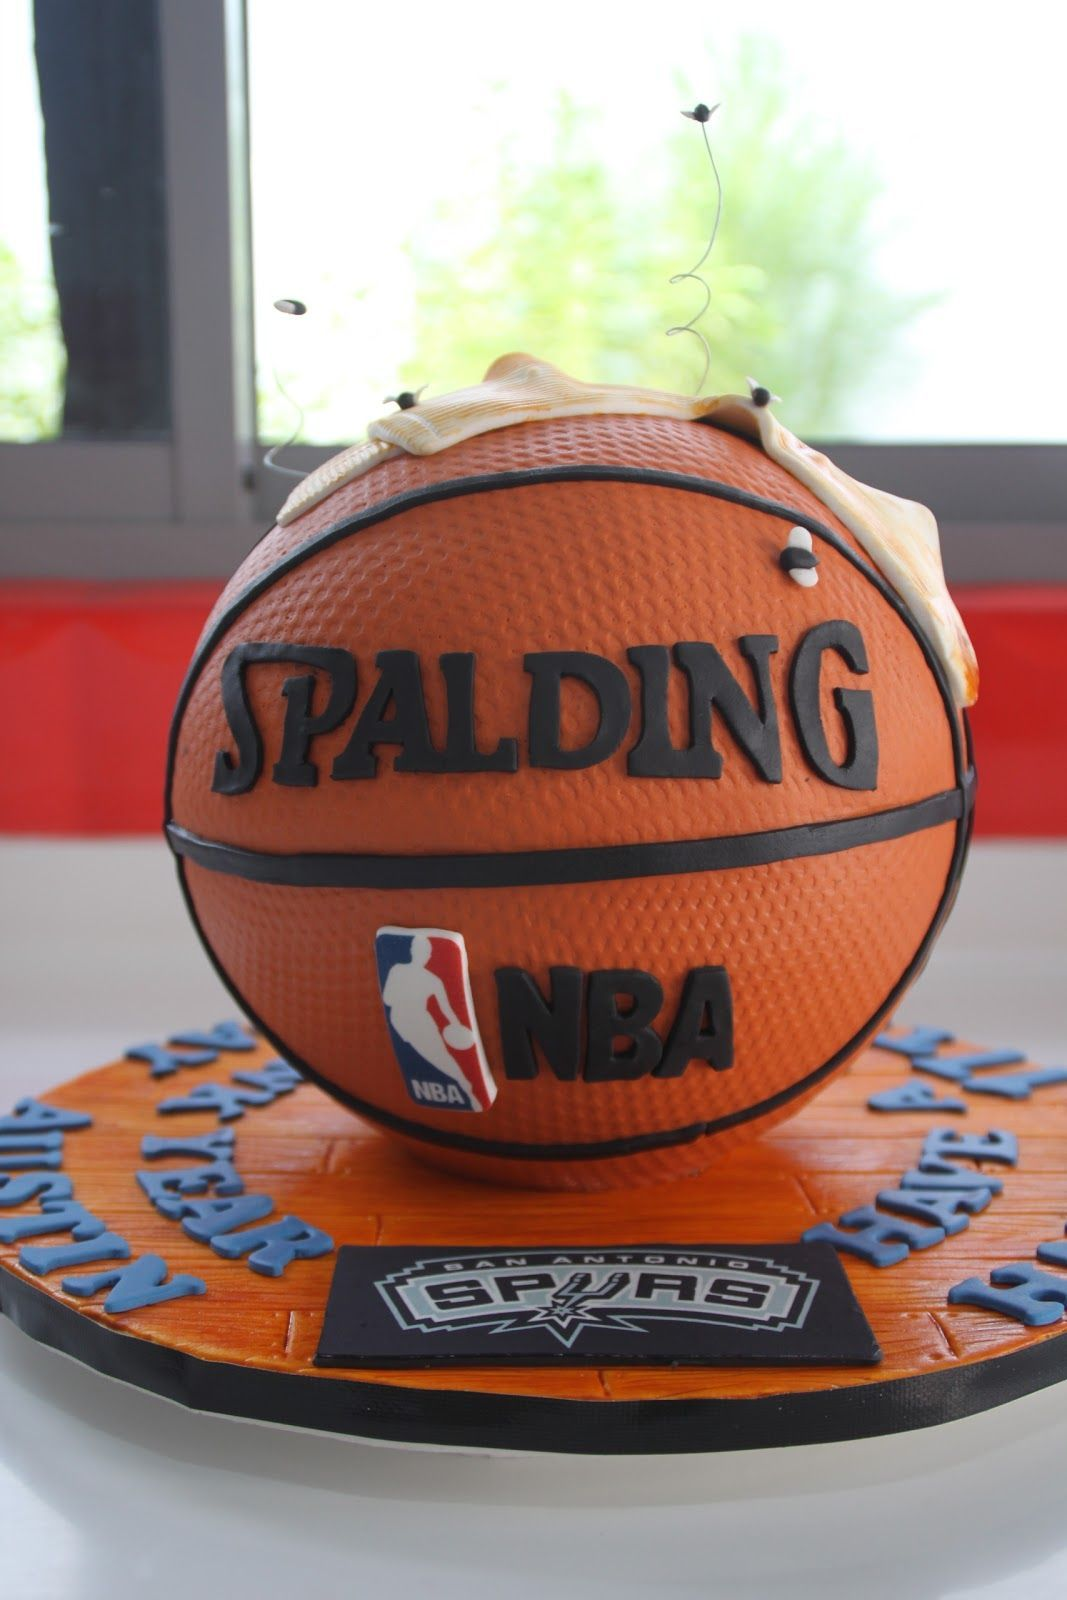 Celebrate with Cake! Sculpted Basketball Cake with Socks